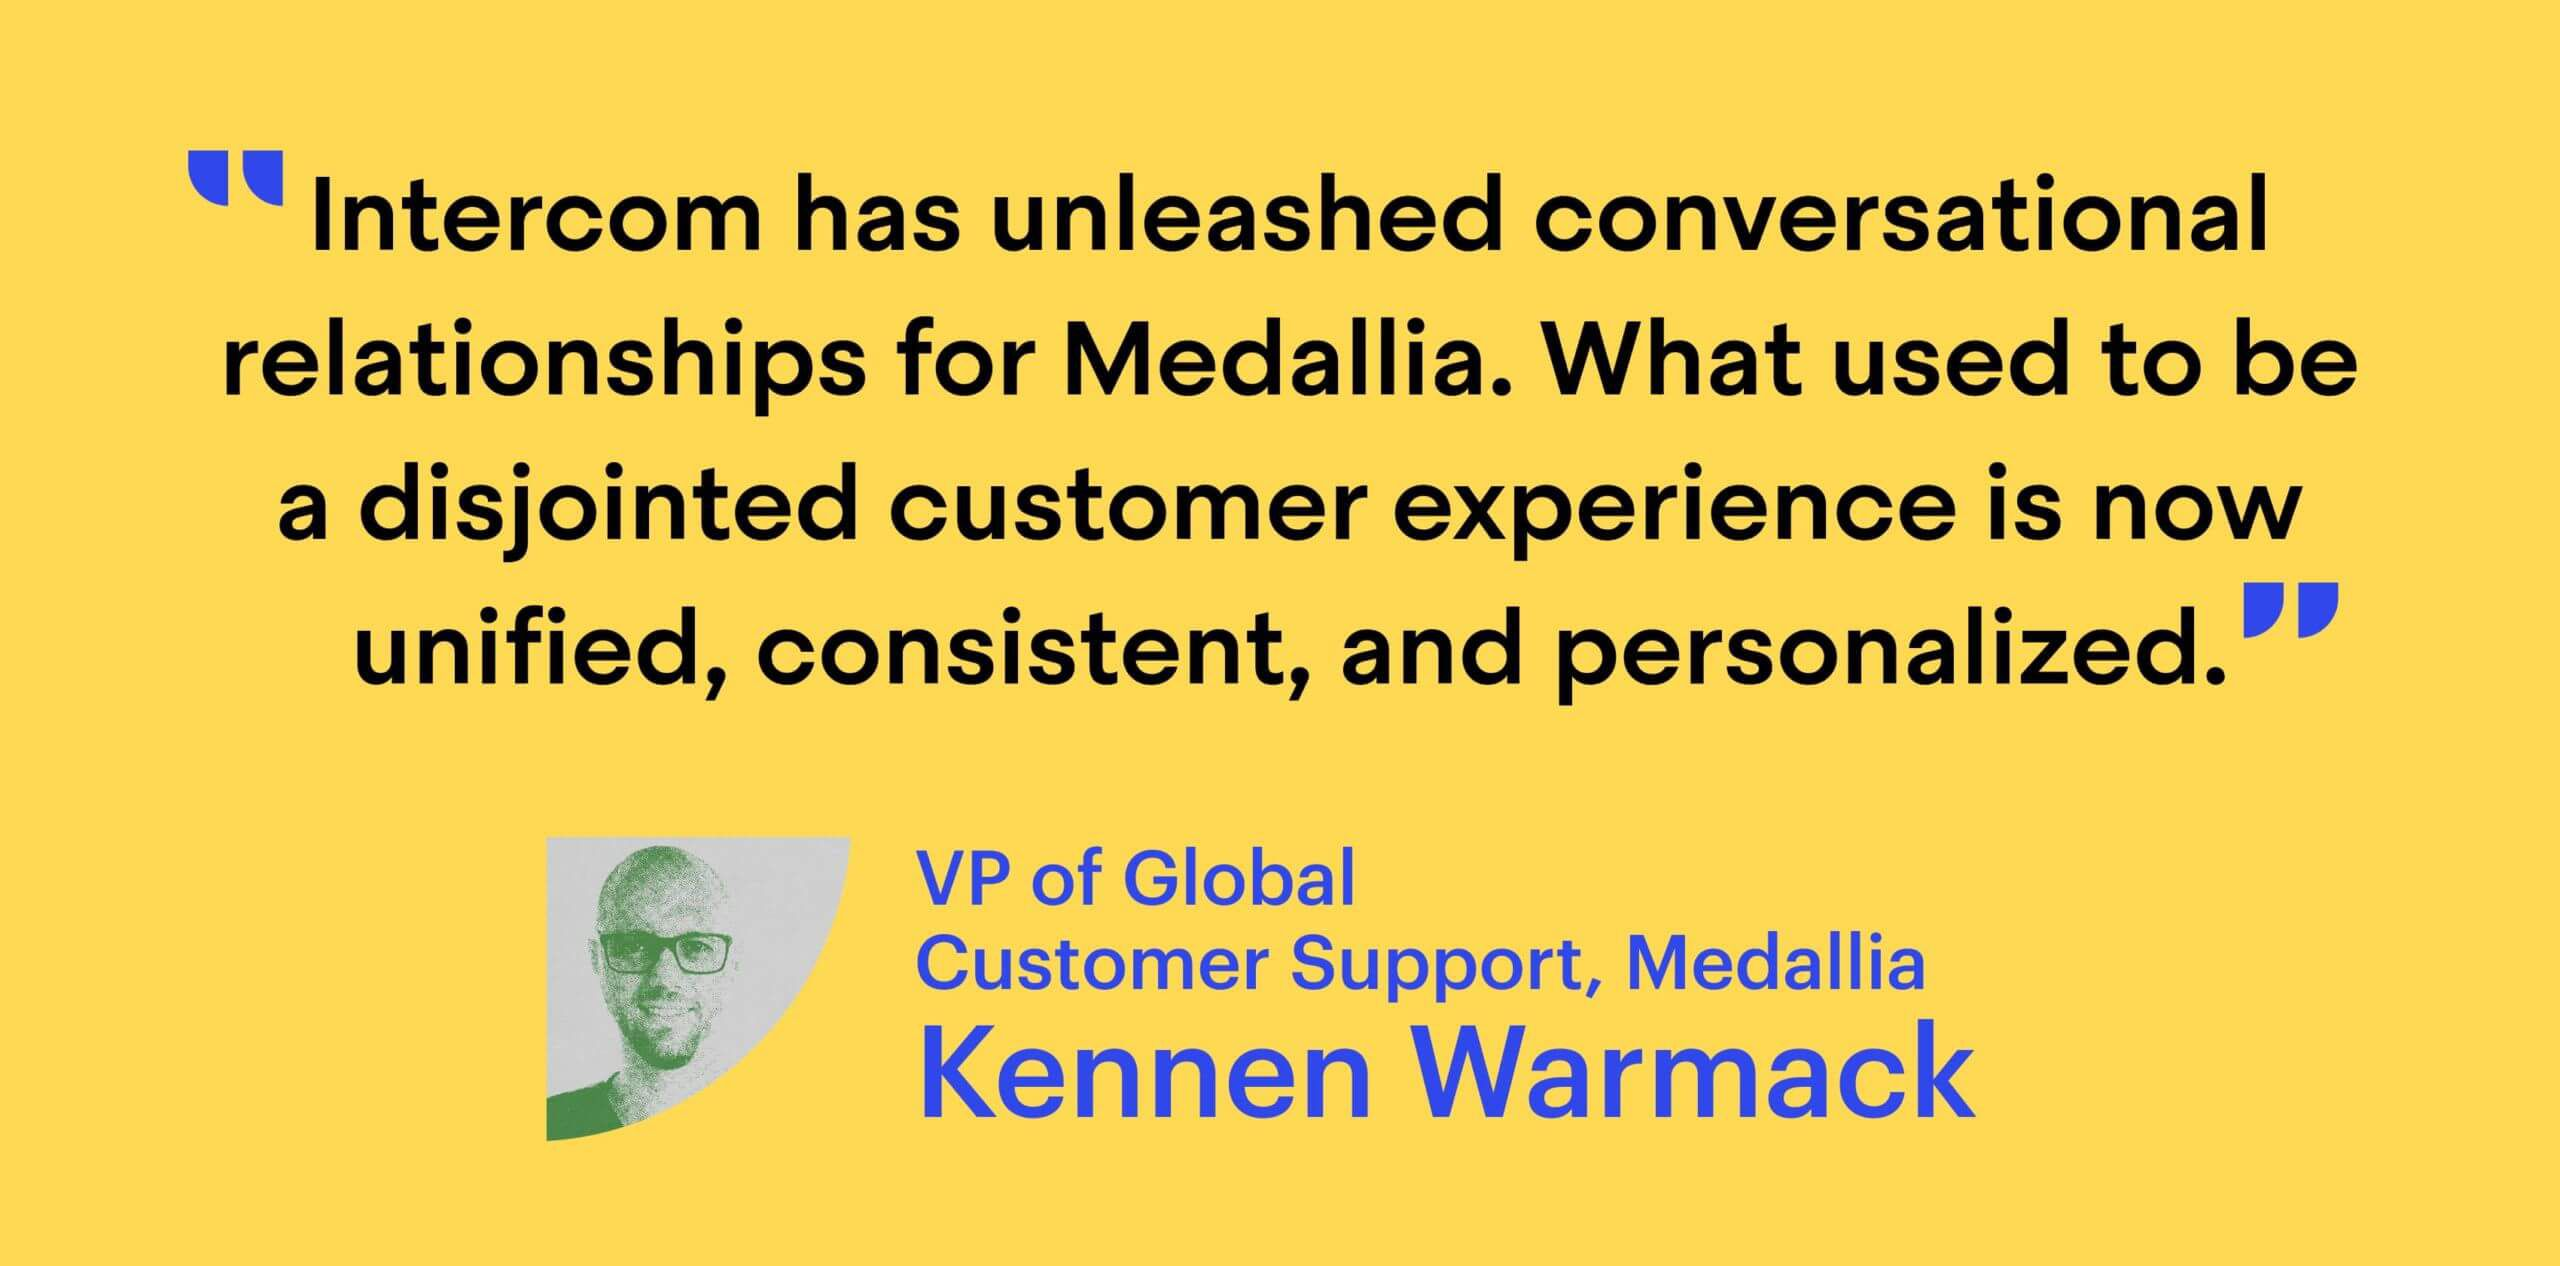 By taking a conversational approach, what used to be a disjointed customer experience is now unified, consistent, and personalized.